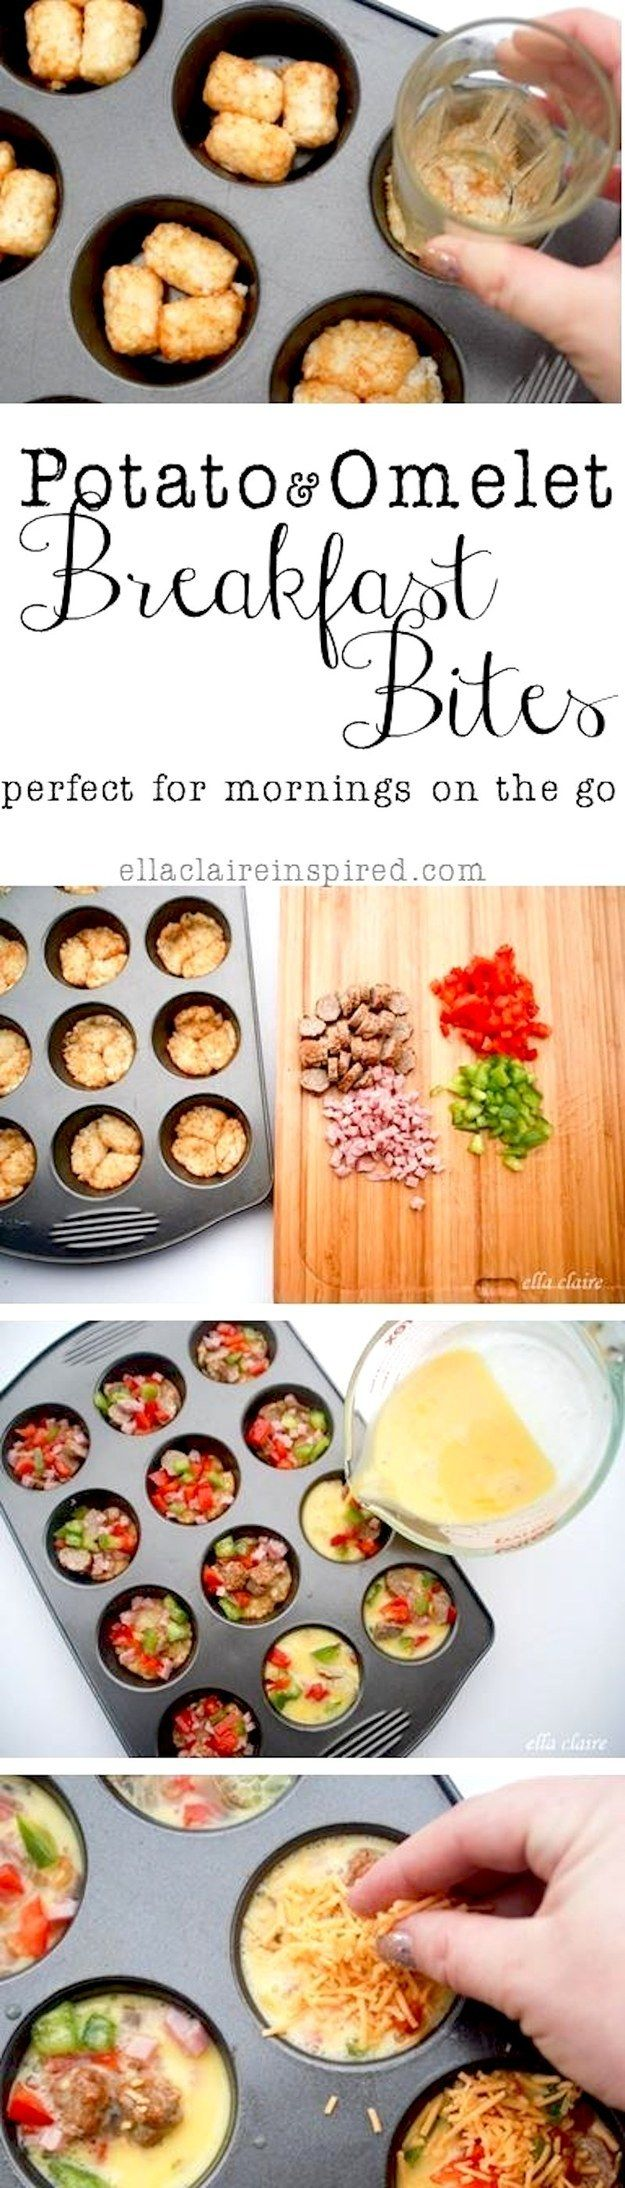 Potato & Omelet Breakfast Bites | 21 Back-To-School Breakfast Recipes That Kids Will Love